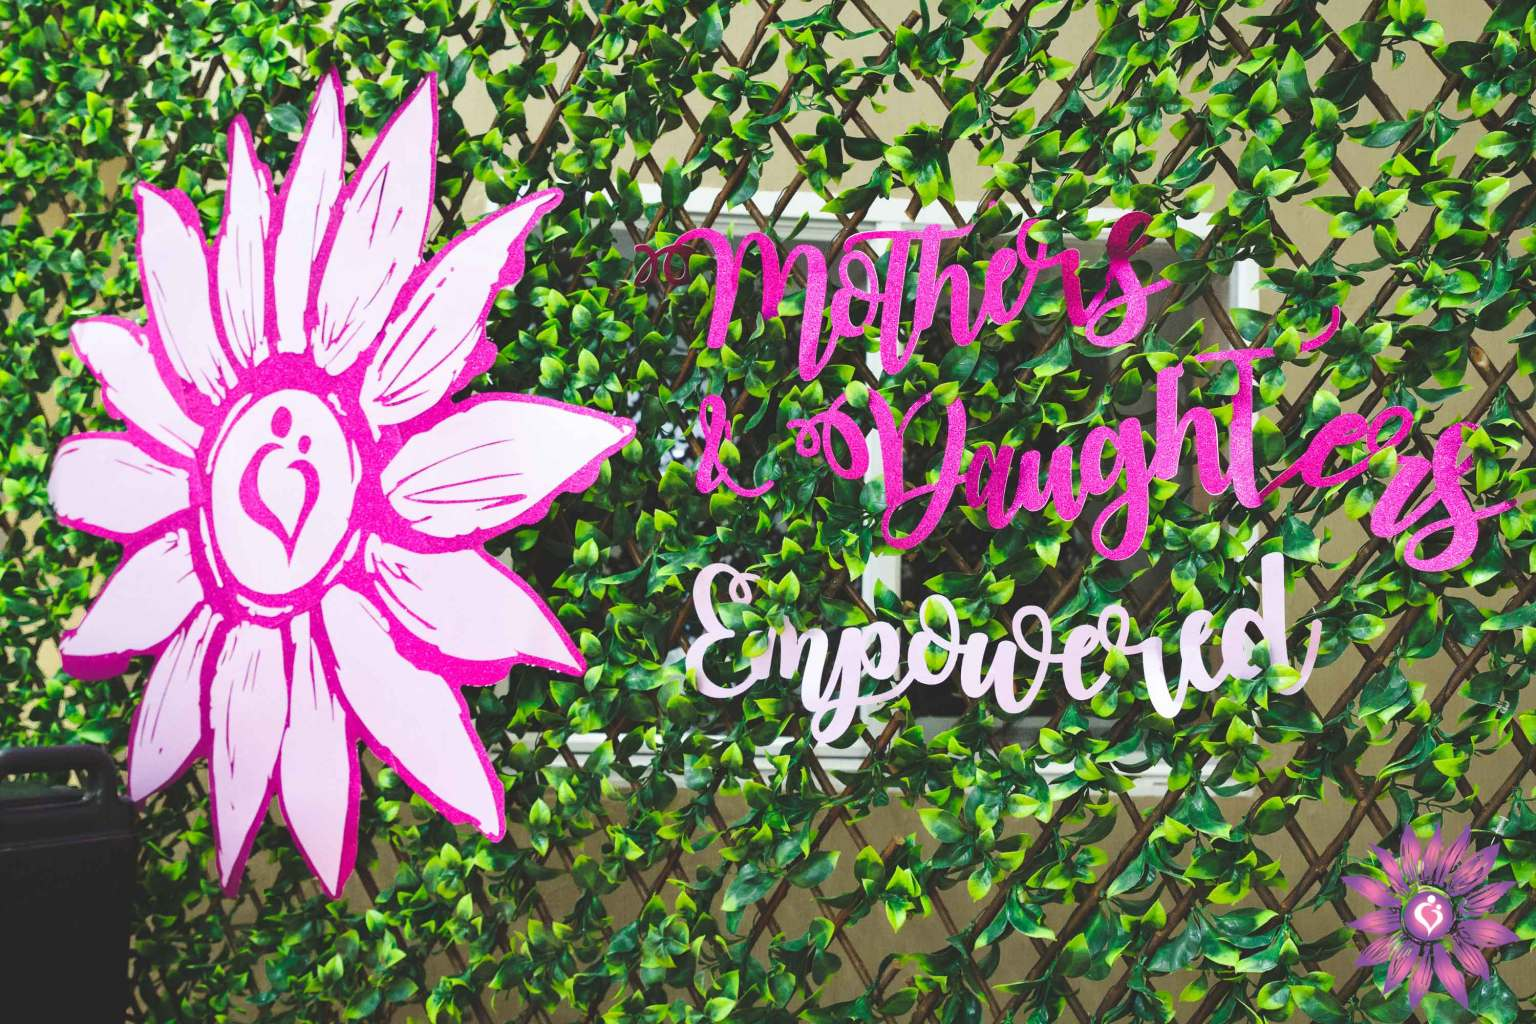 Mothers and Daughters Empowered